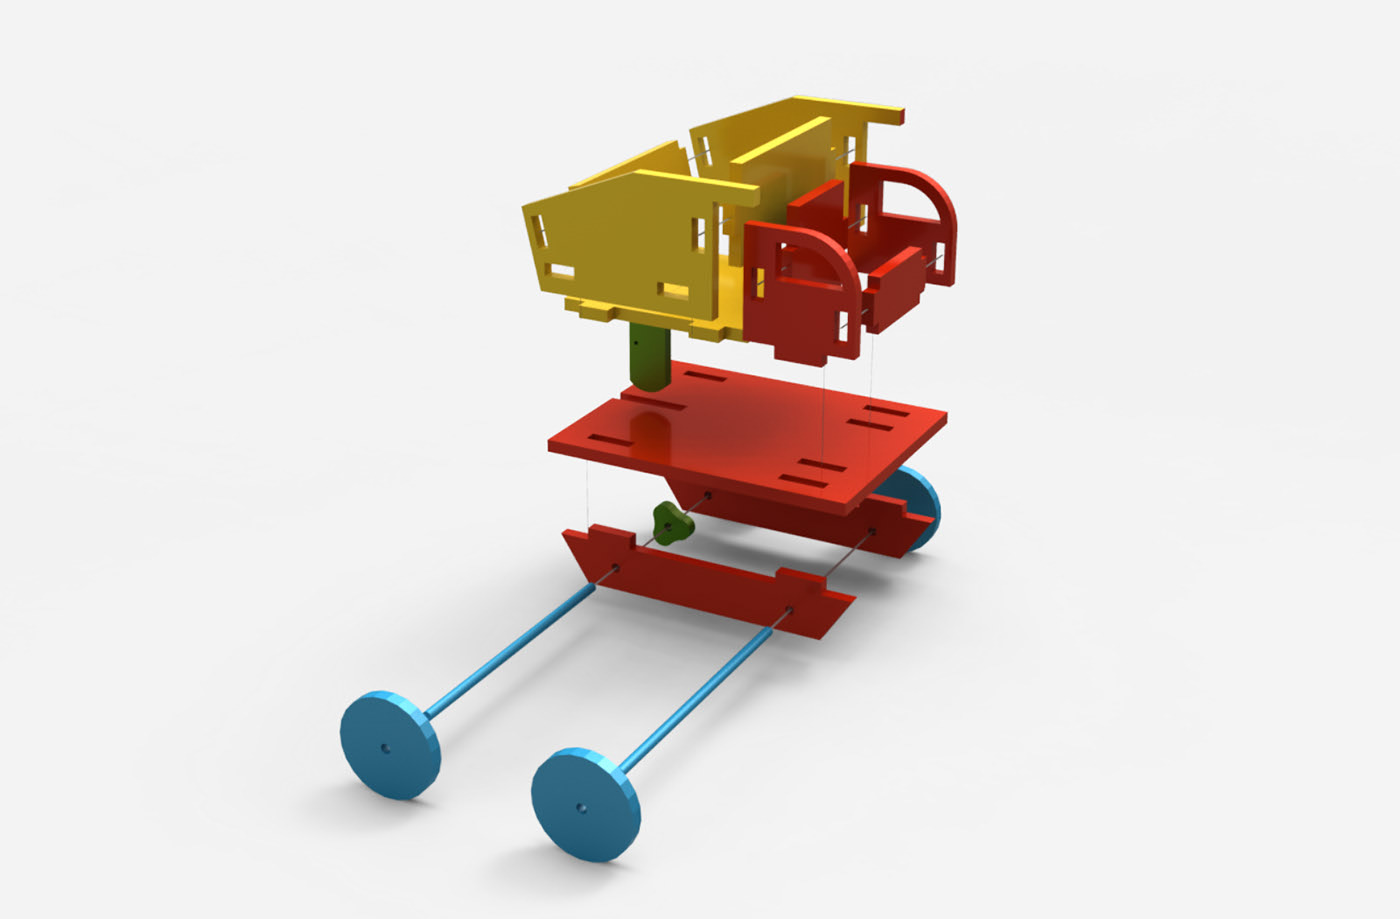 Laser Cut Kids Wooden Toy Truck Free Vector